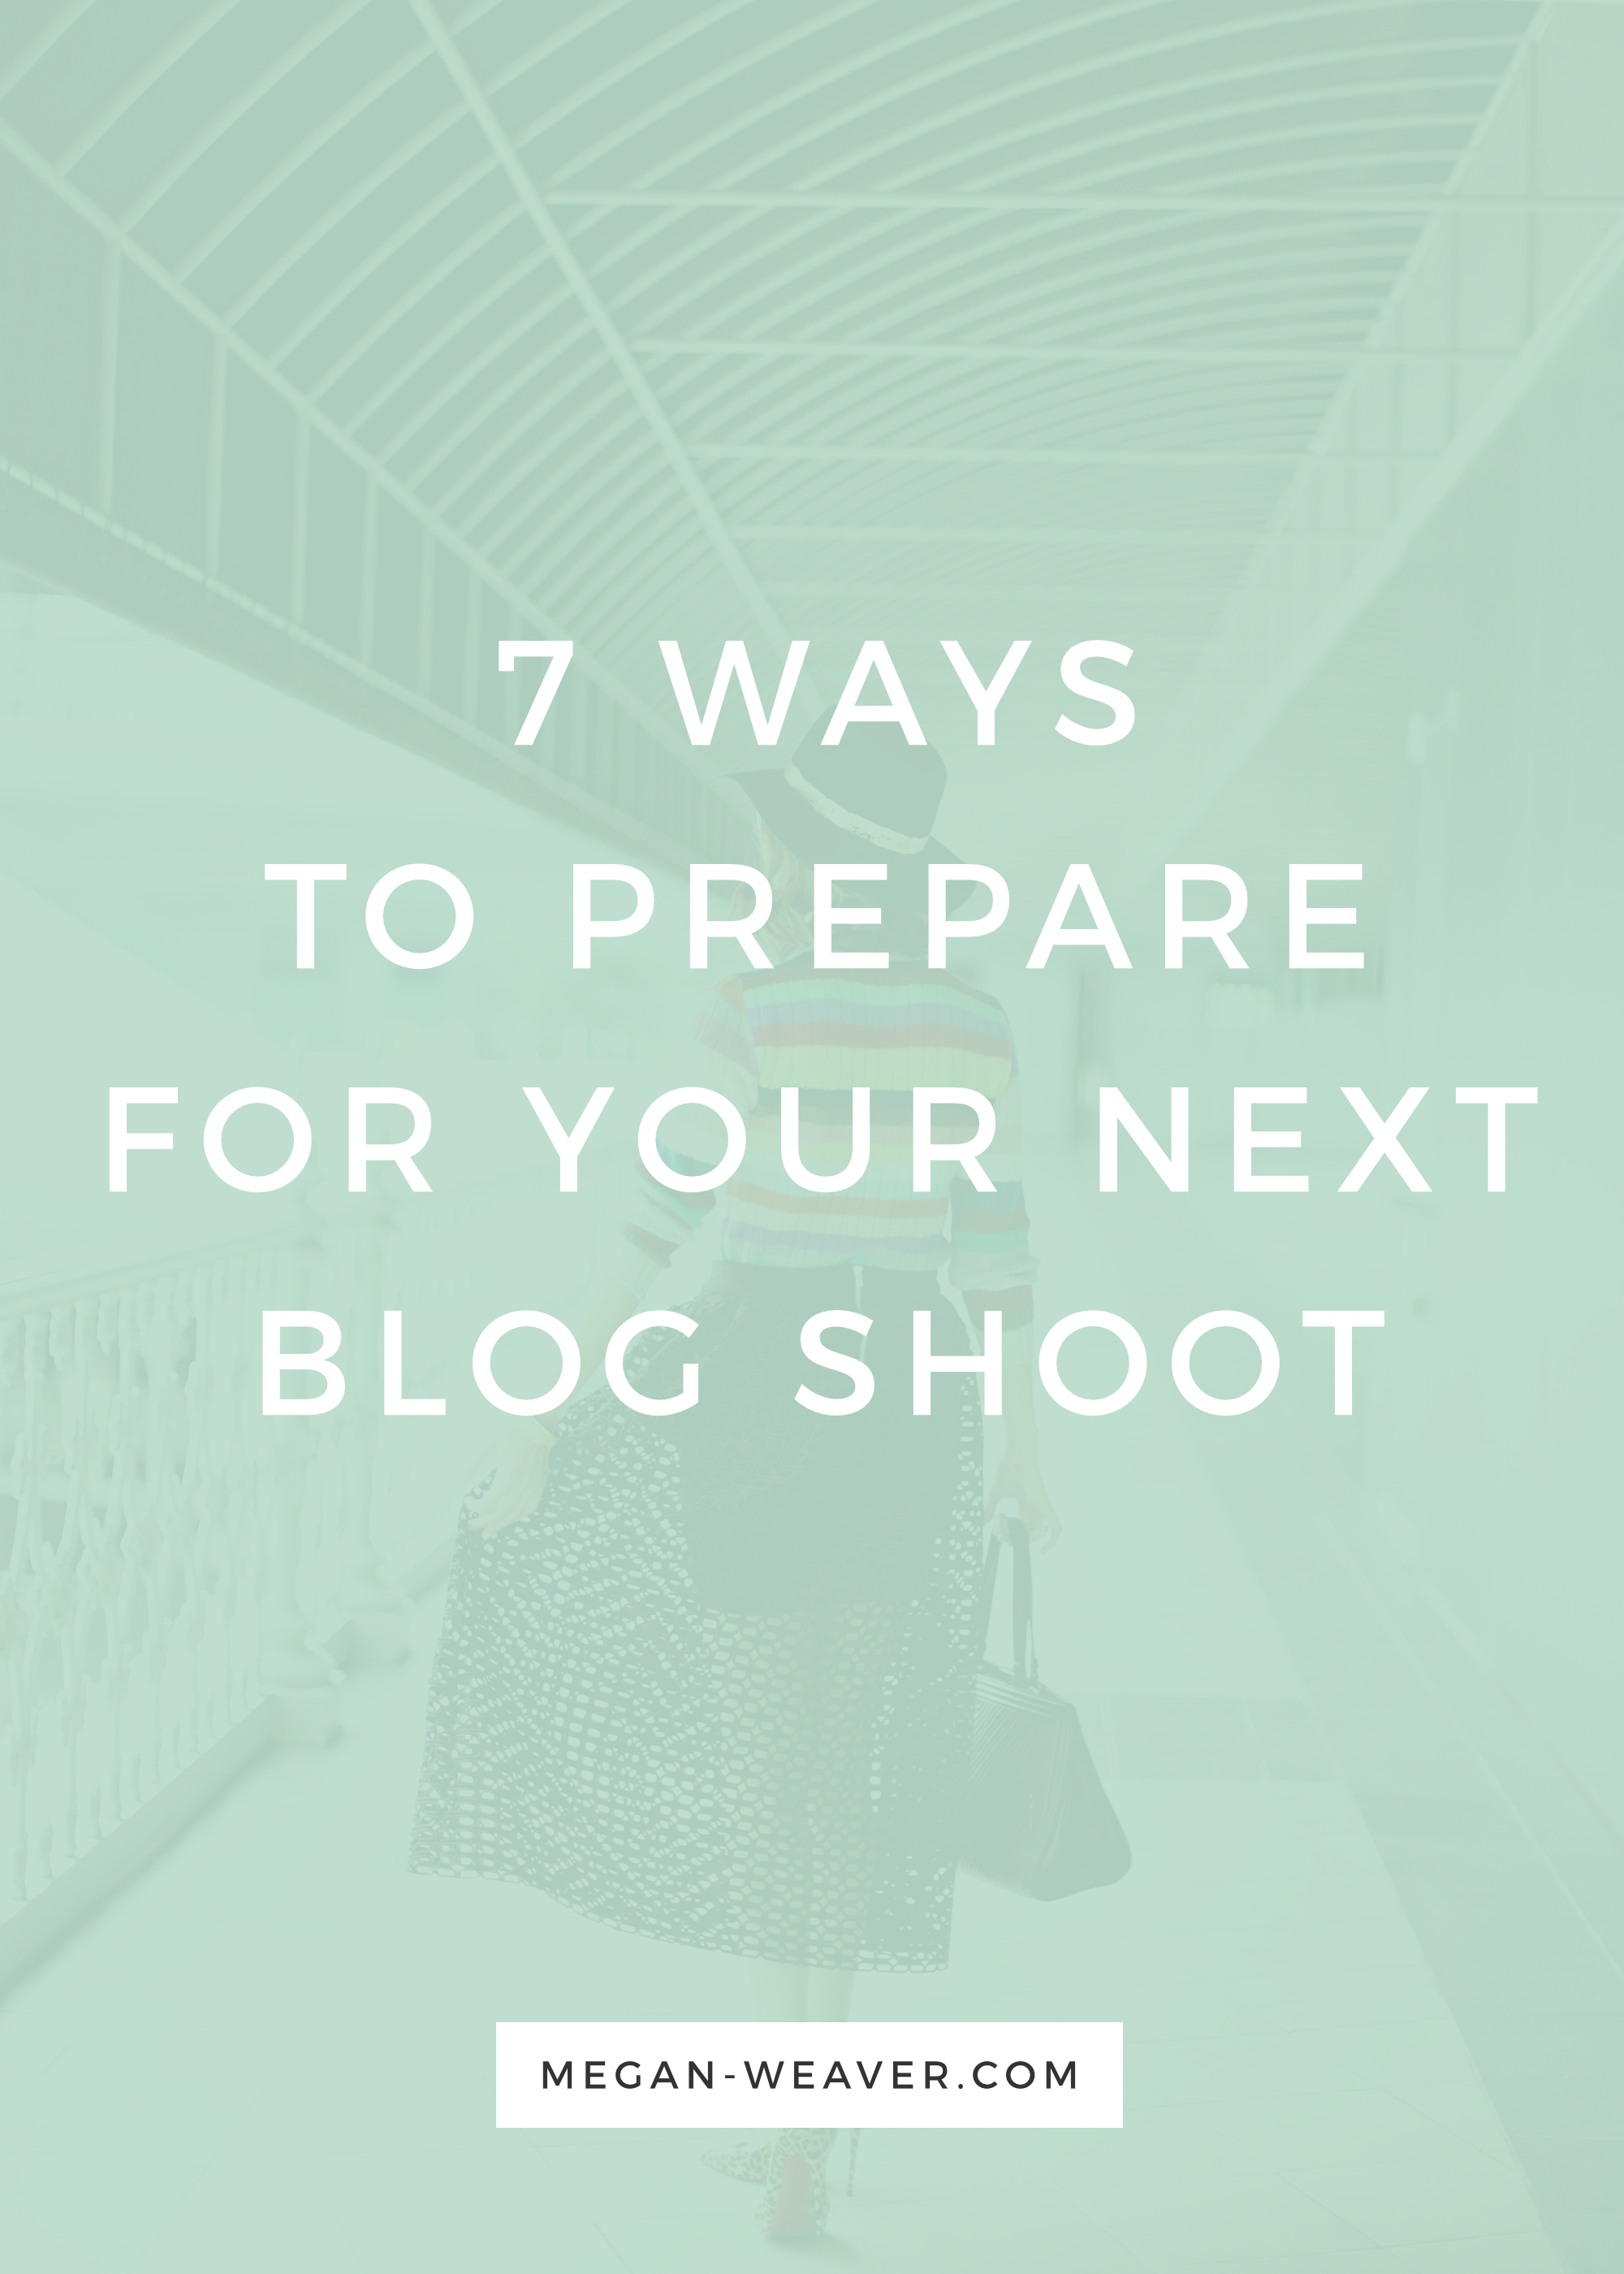 Prepare for your next big blog shoot with these 7 quick and easy tips!